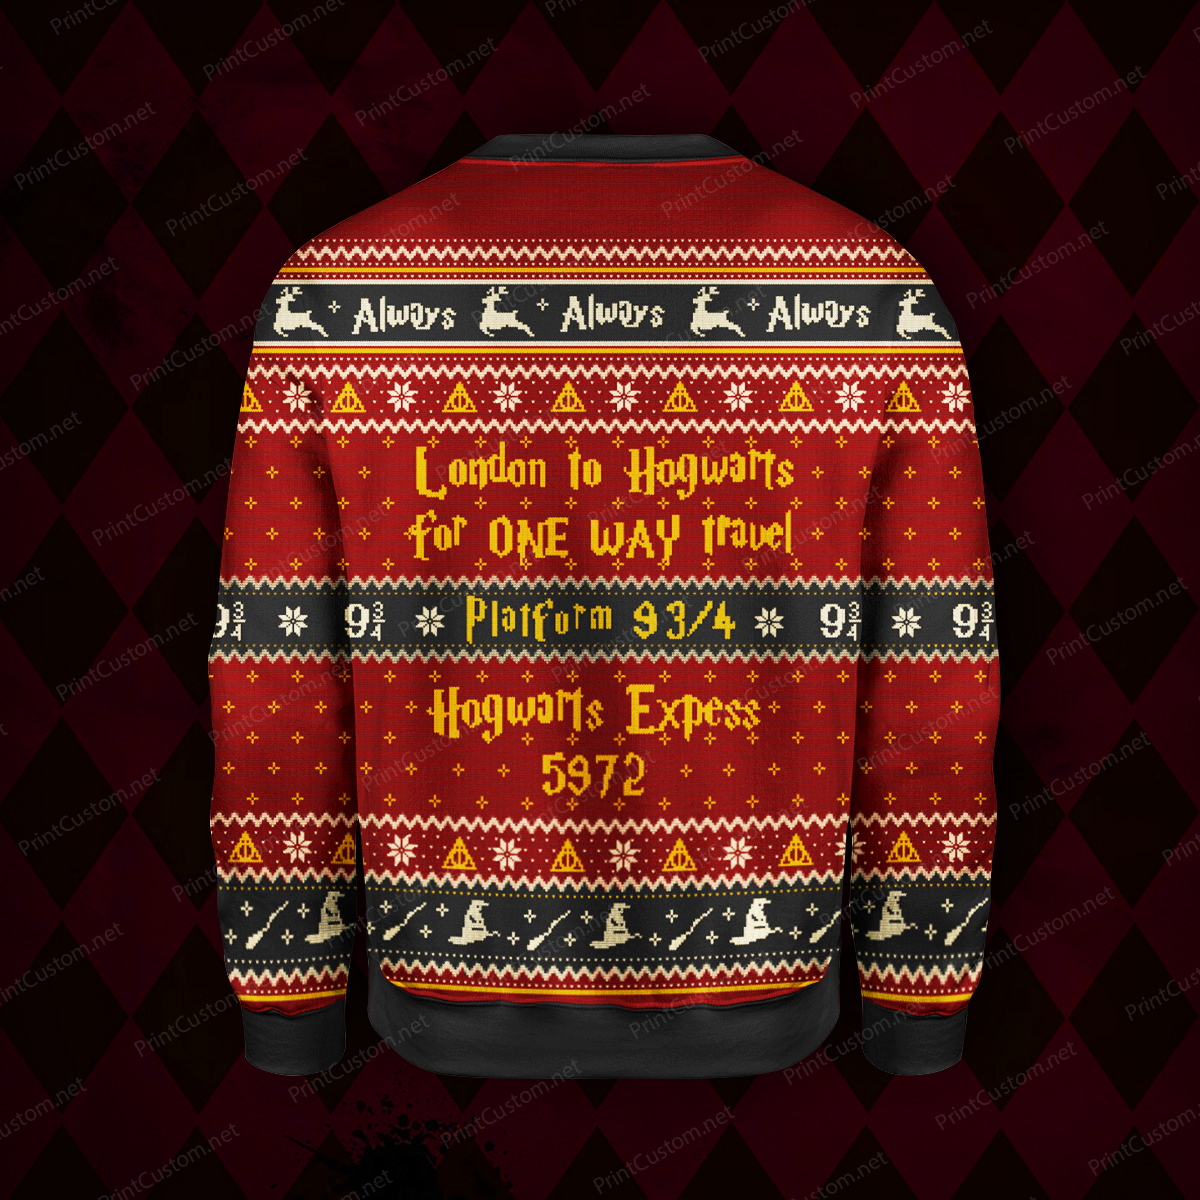 King's cross station harry potter full printing ugly christmas sweater 2